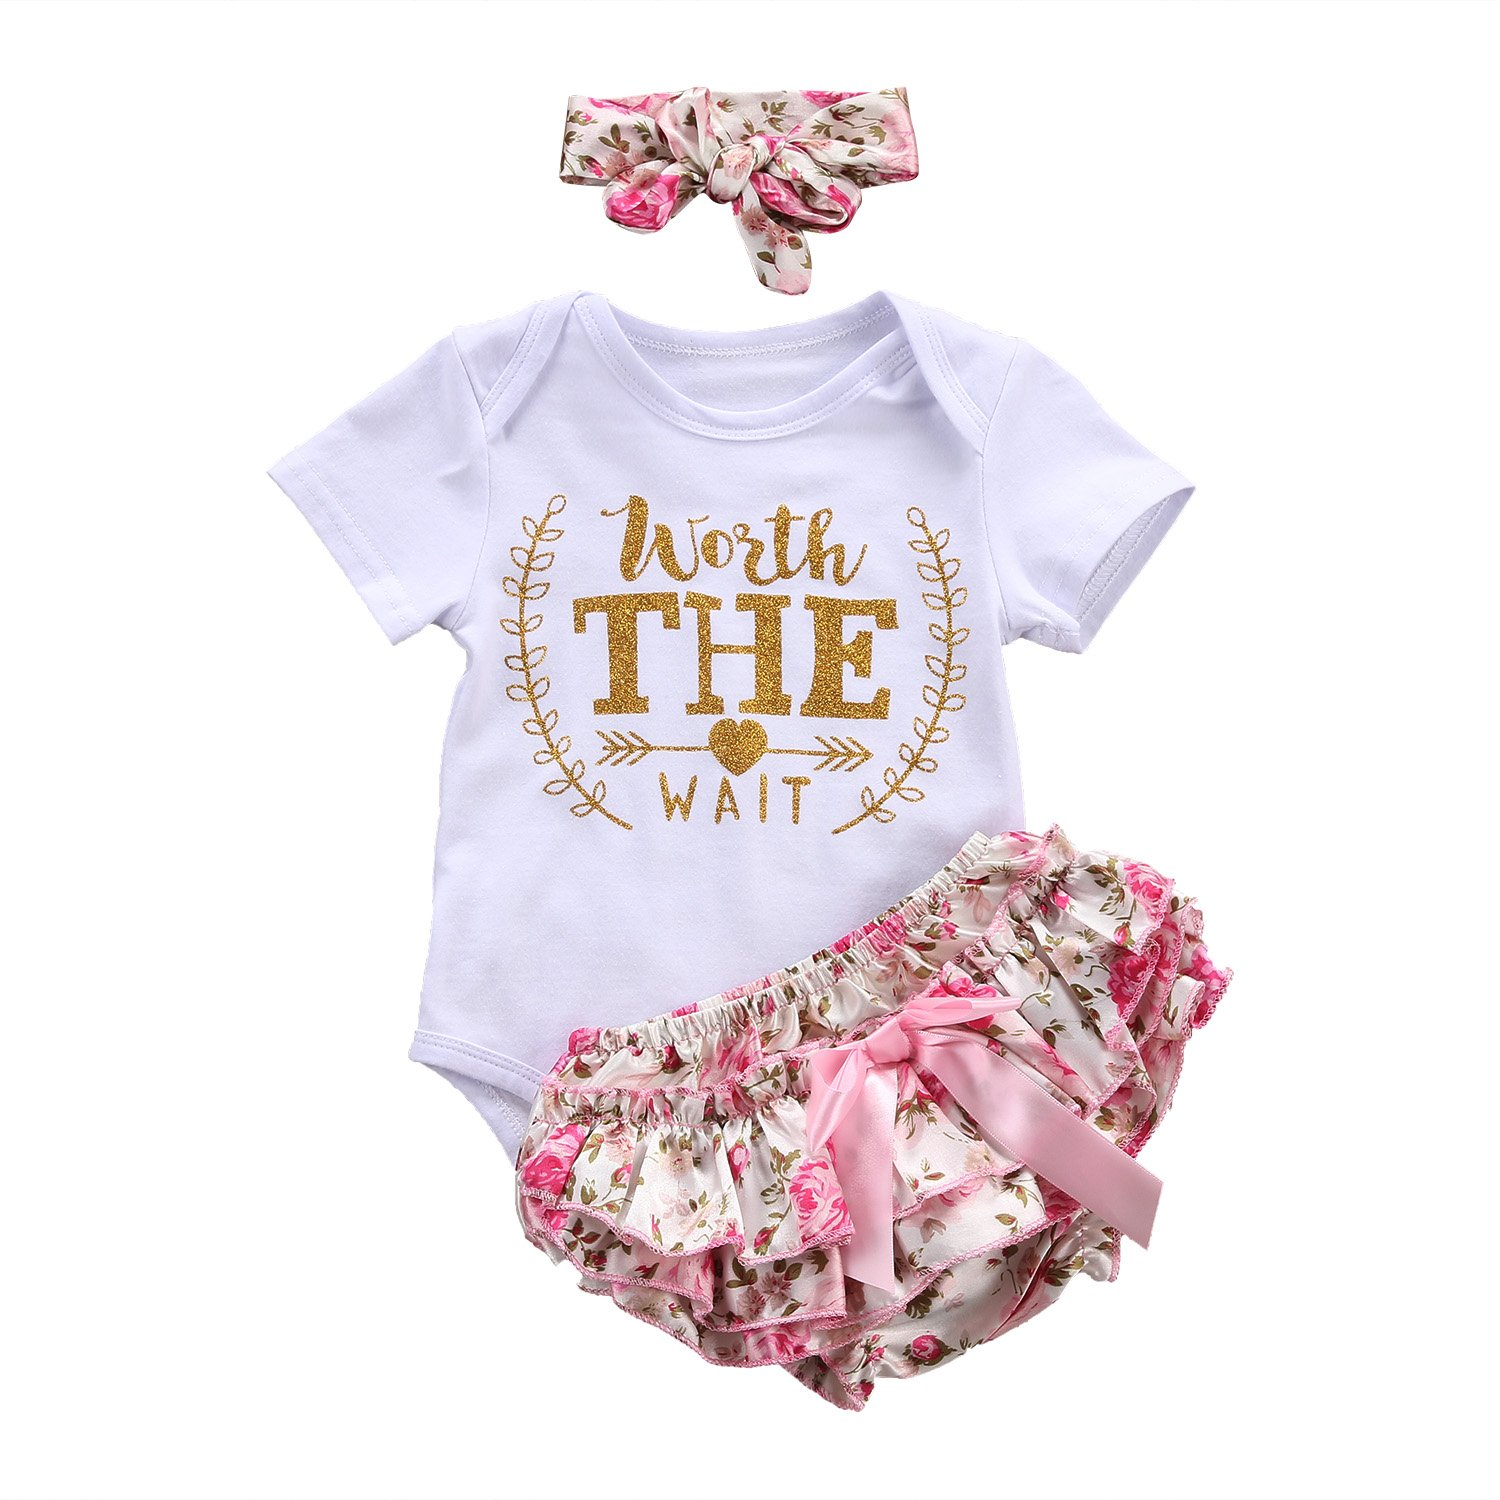 Newborn Baby Girl Outfit Clothes Romper Jumpsuit Bodysuit + Pants + Headband Set Aliven